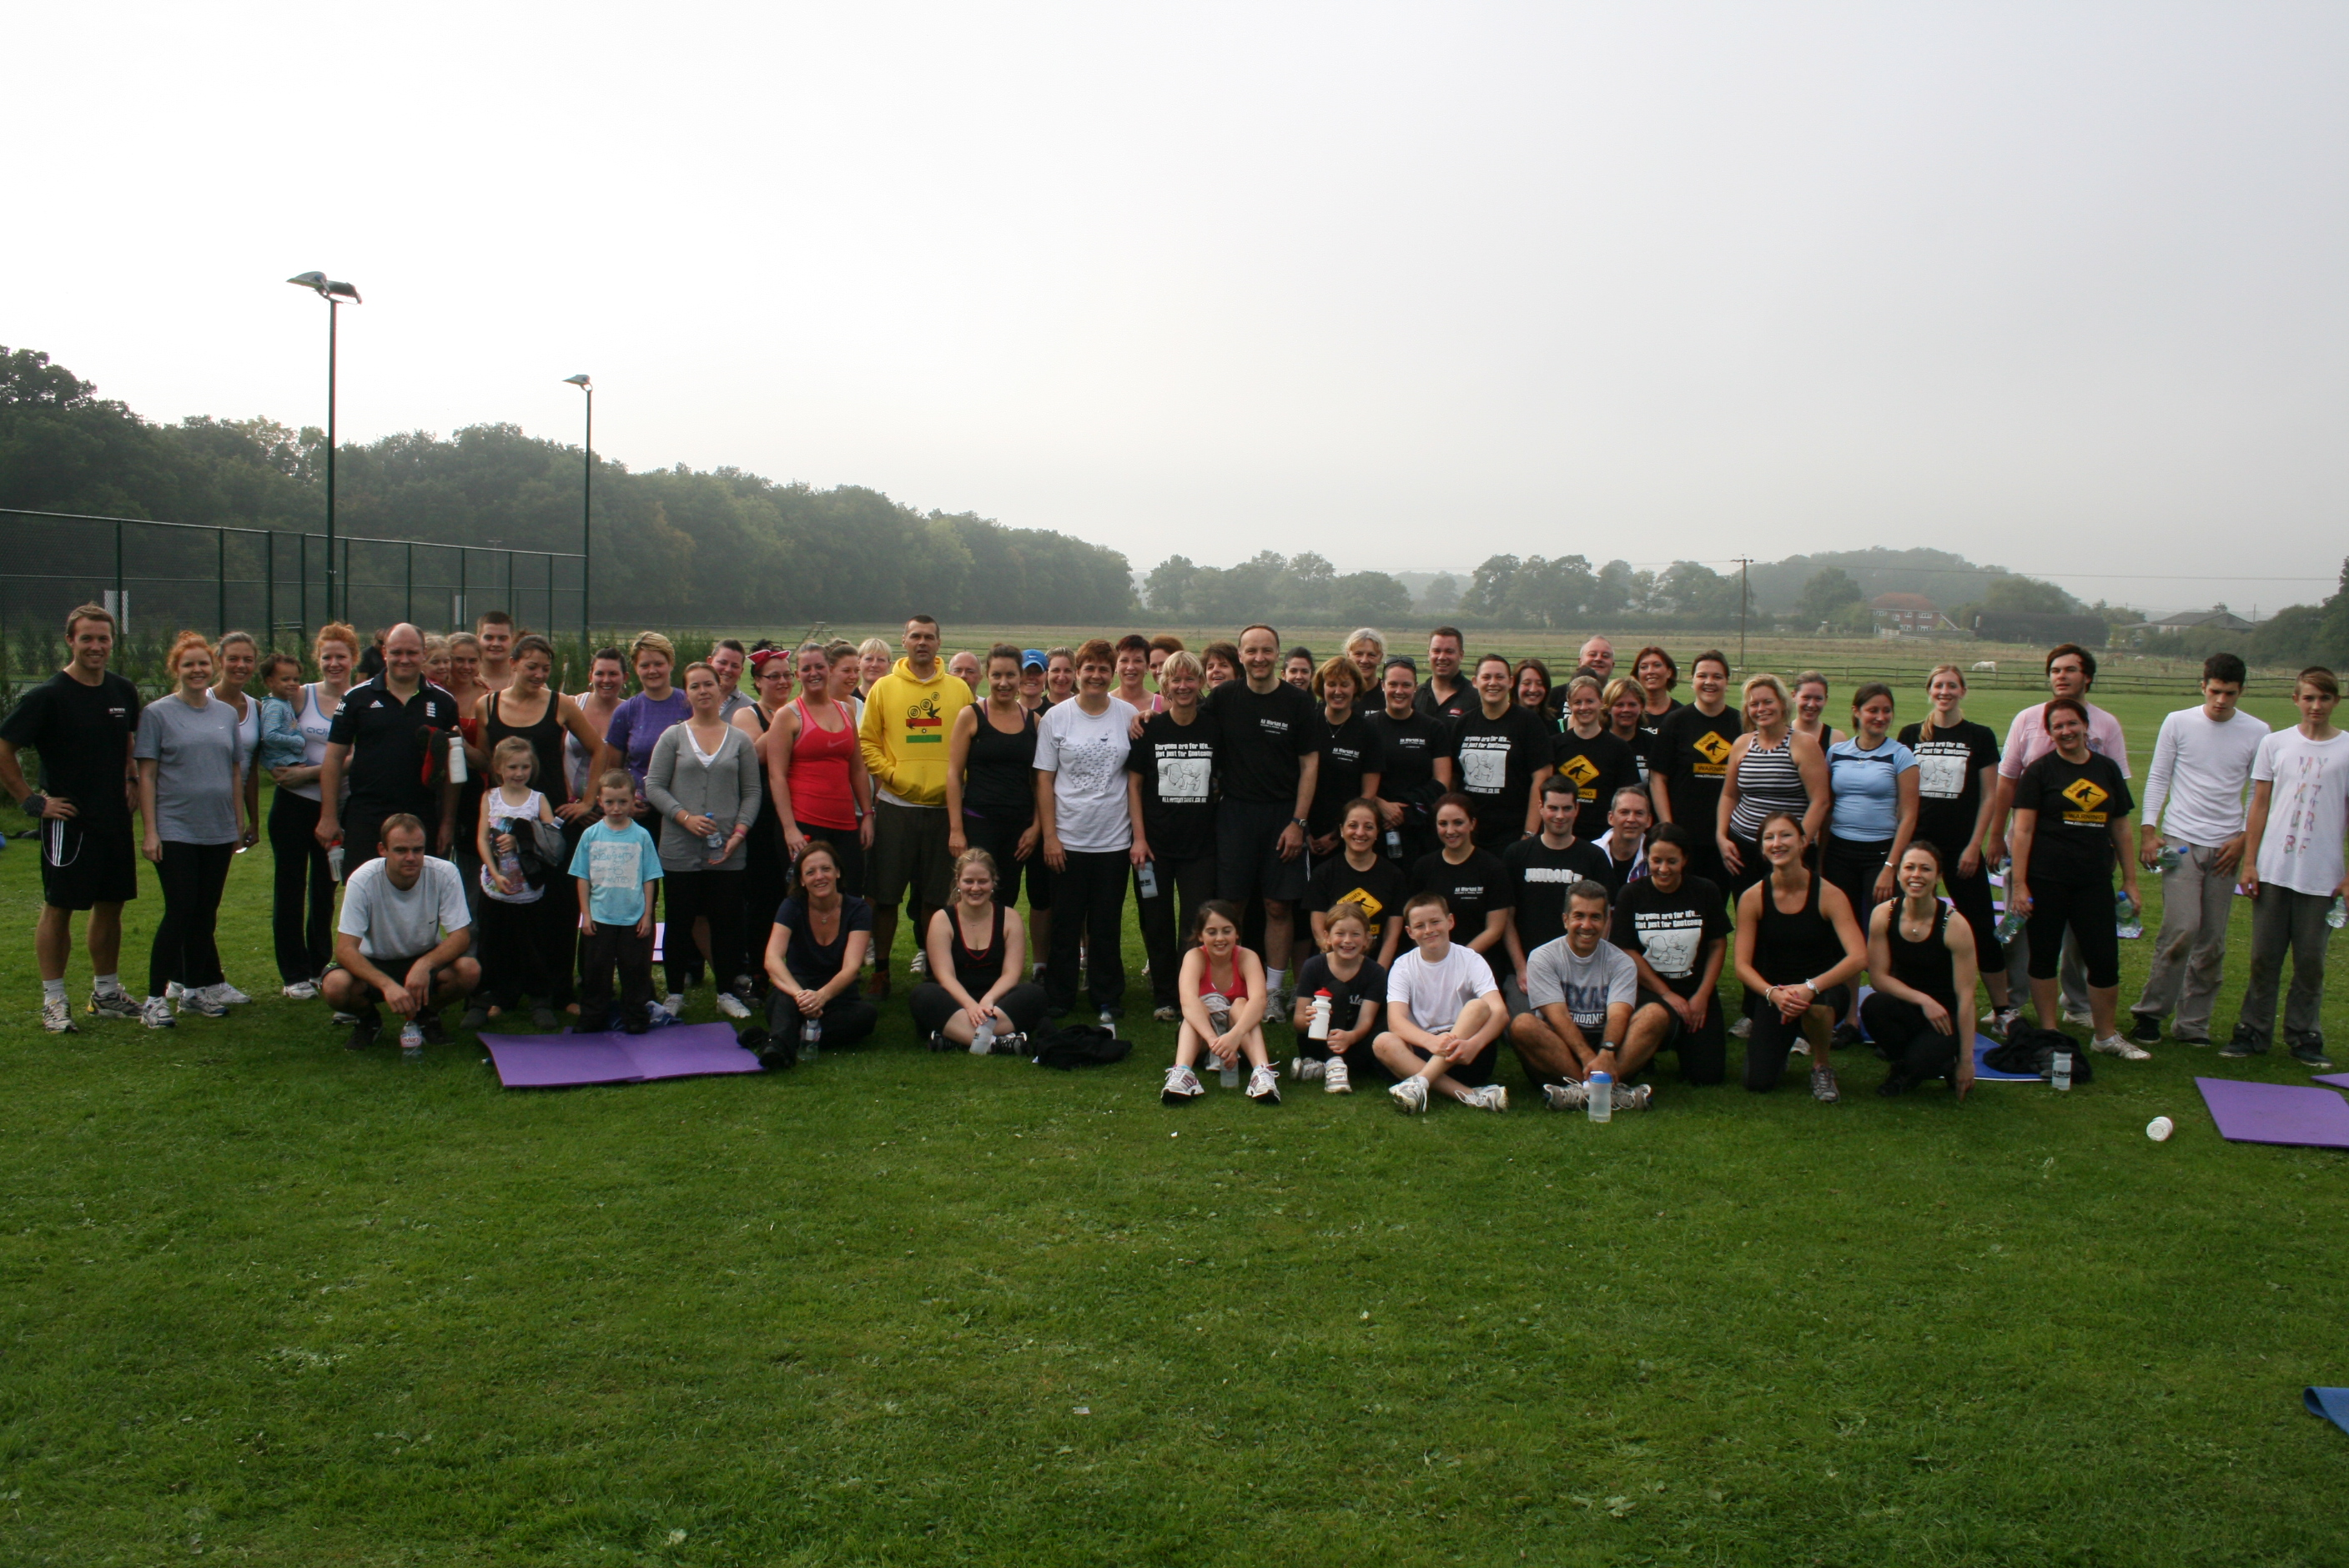 Charity+Bootcamp+438.JPG